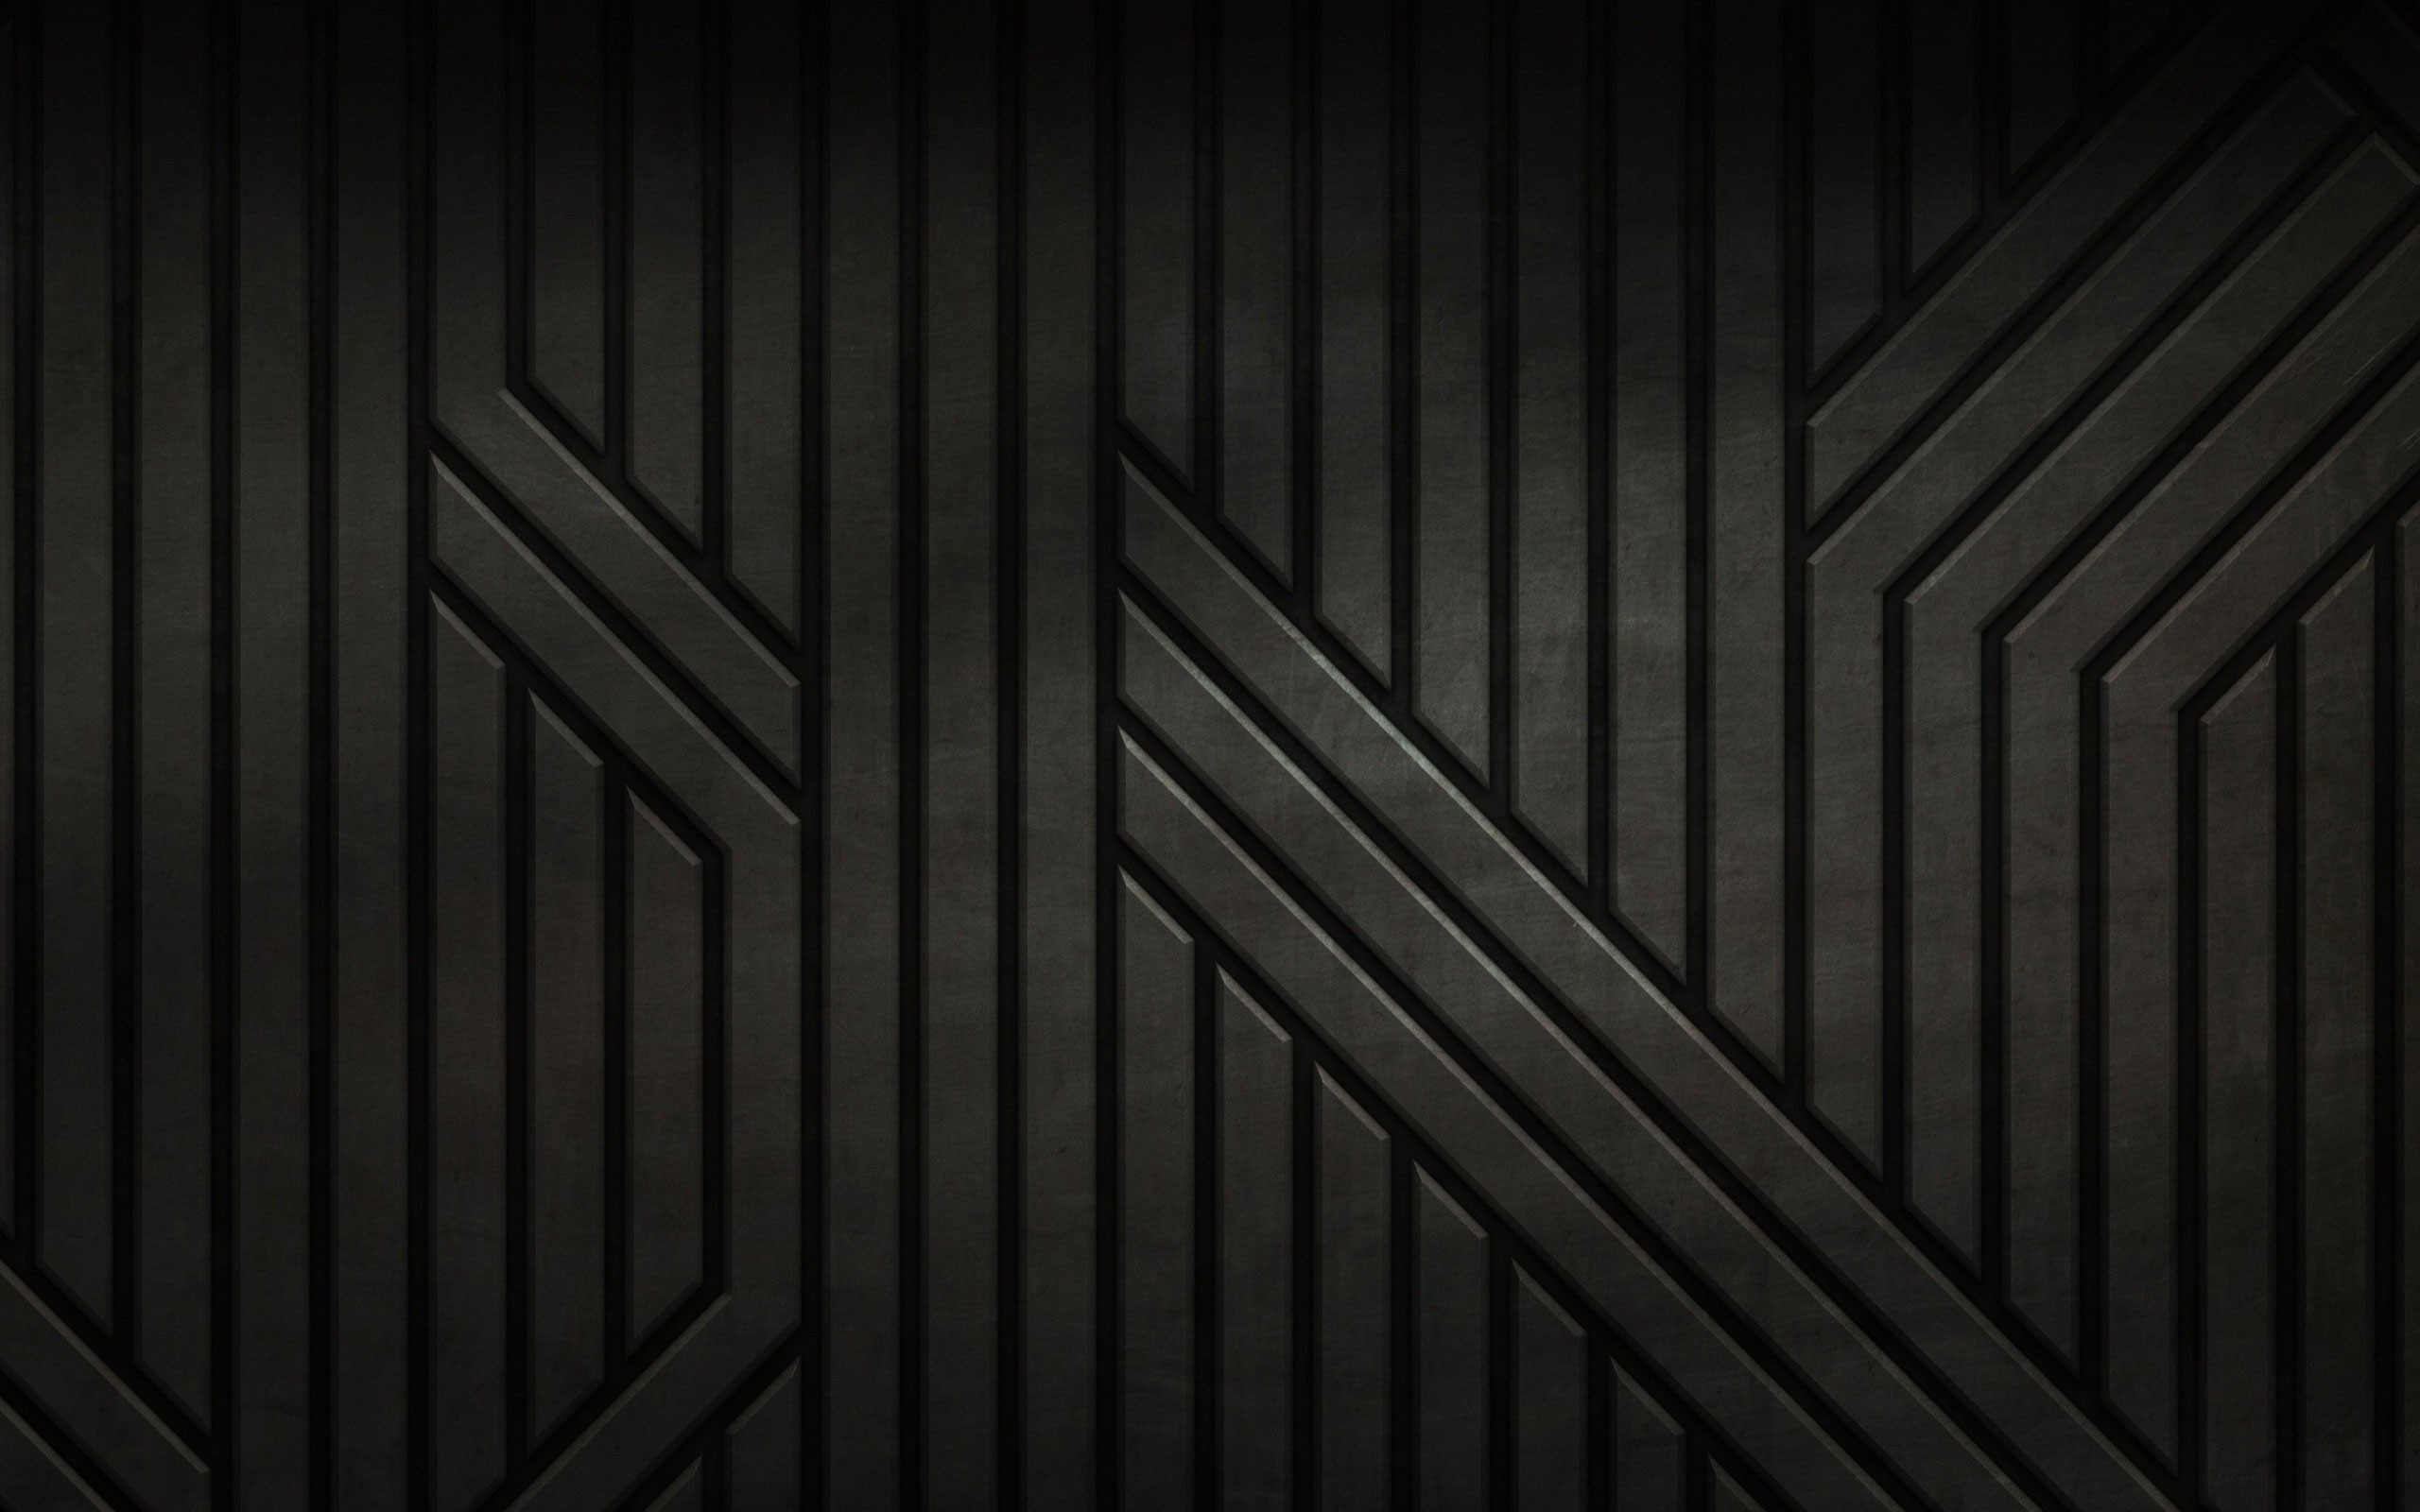 2560x1600 Suited wlprs  Background for Metal Texture